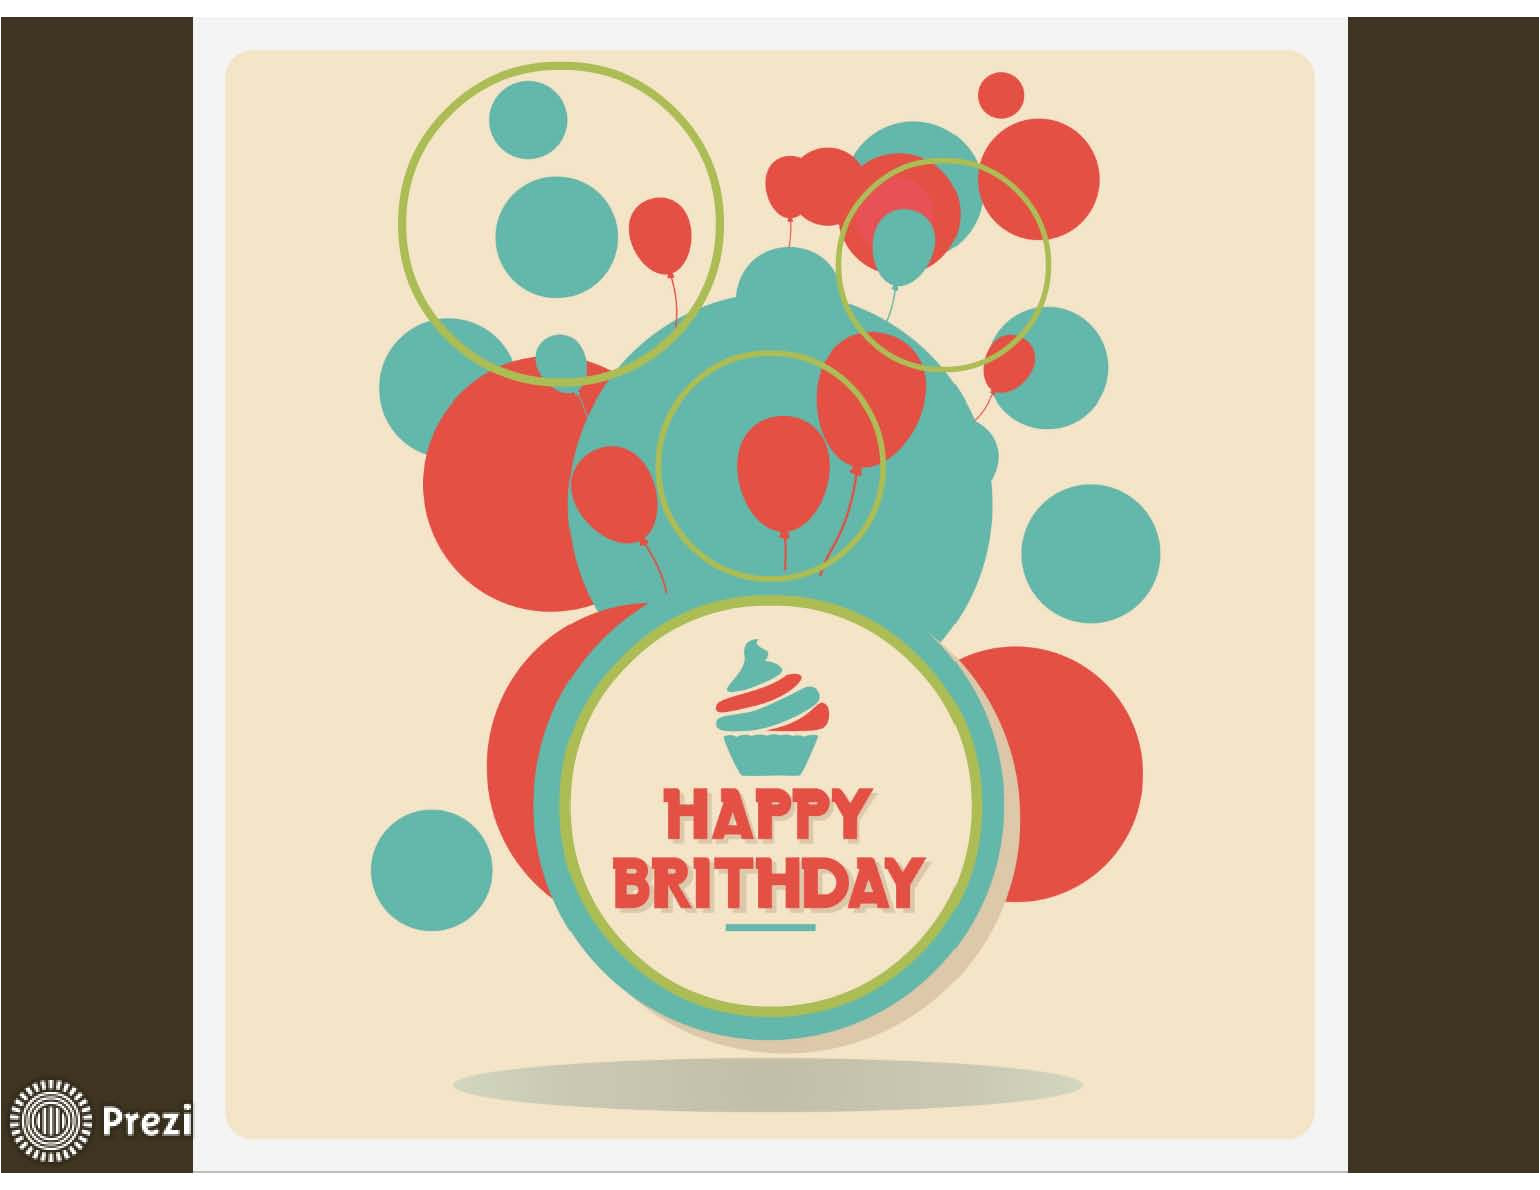 Prezi Birthday Template Happy Birthday 3 Prezi Premium Templates